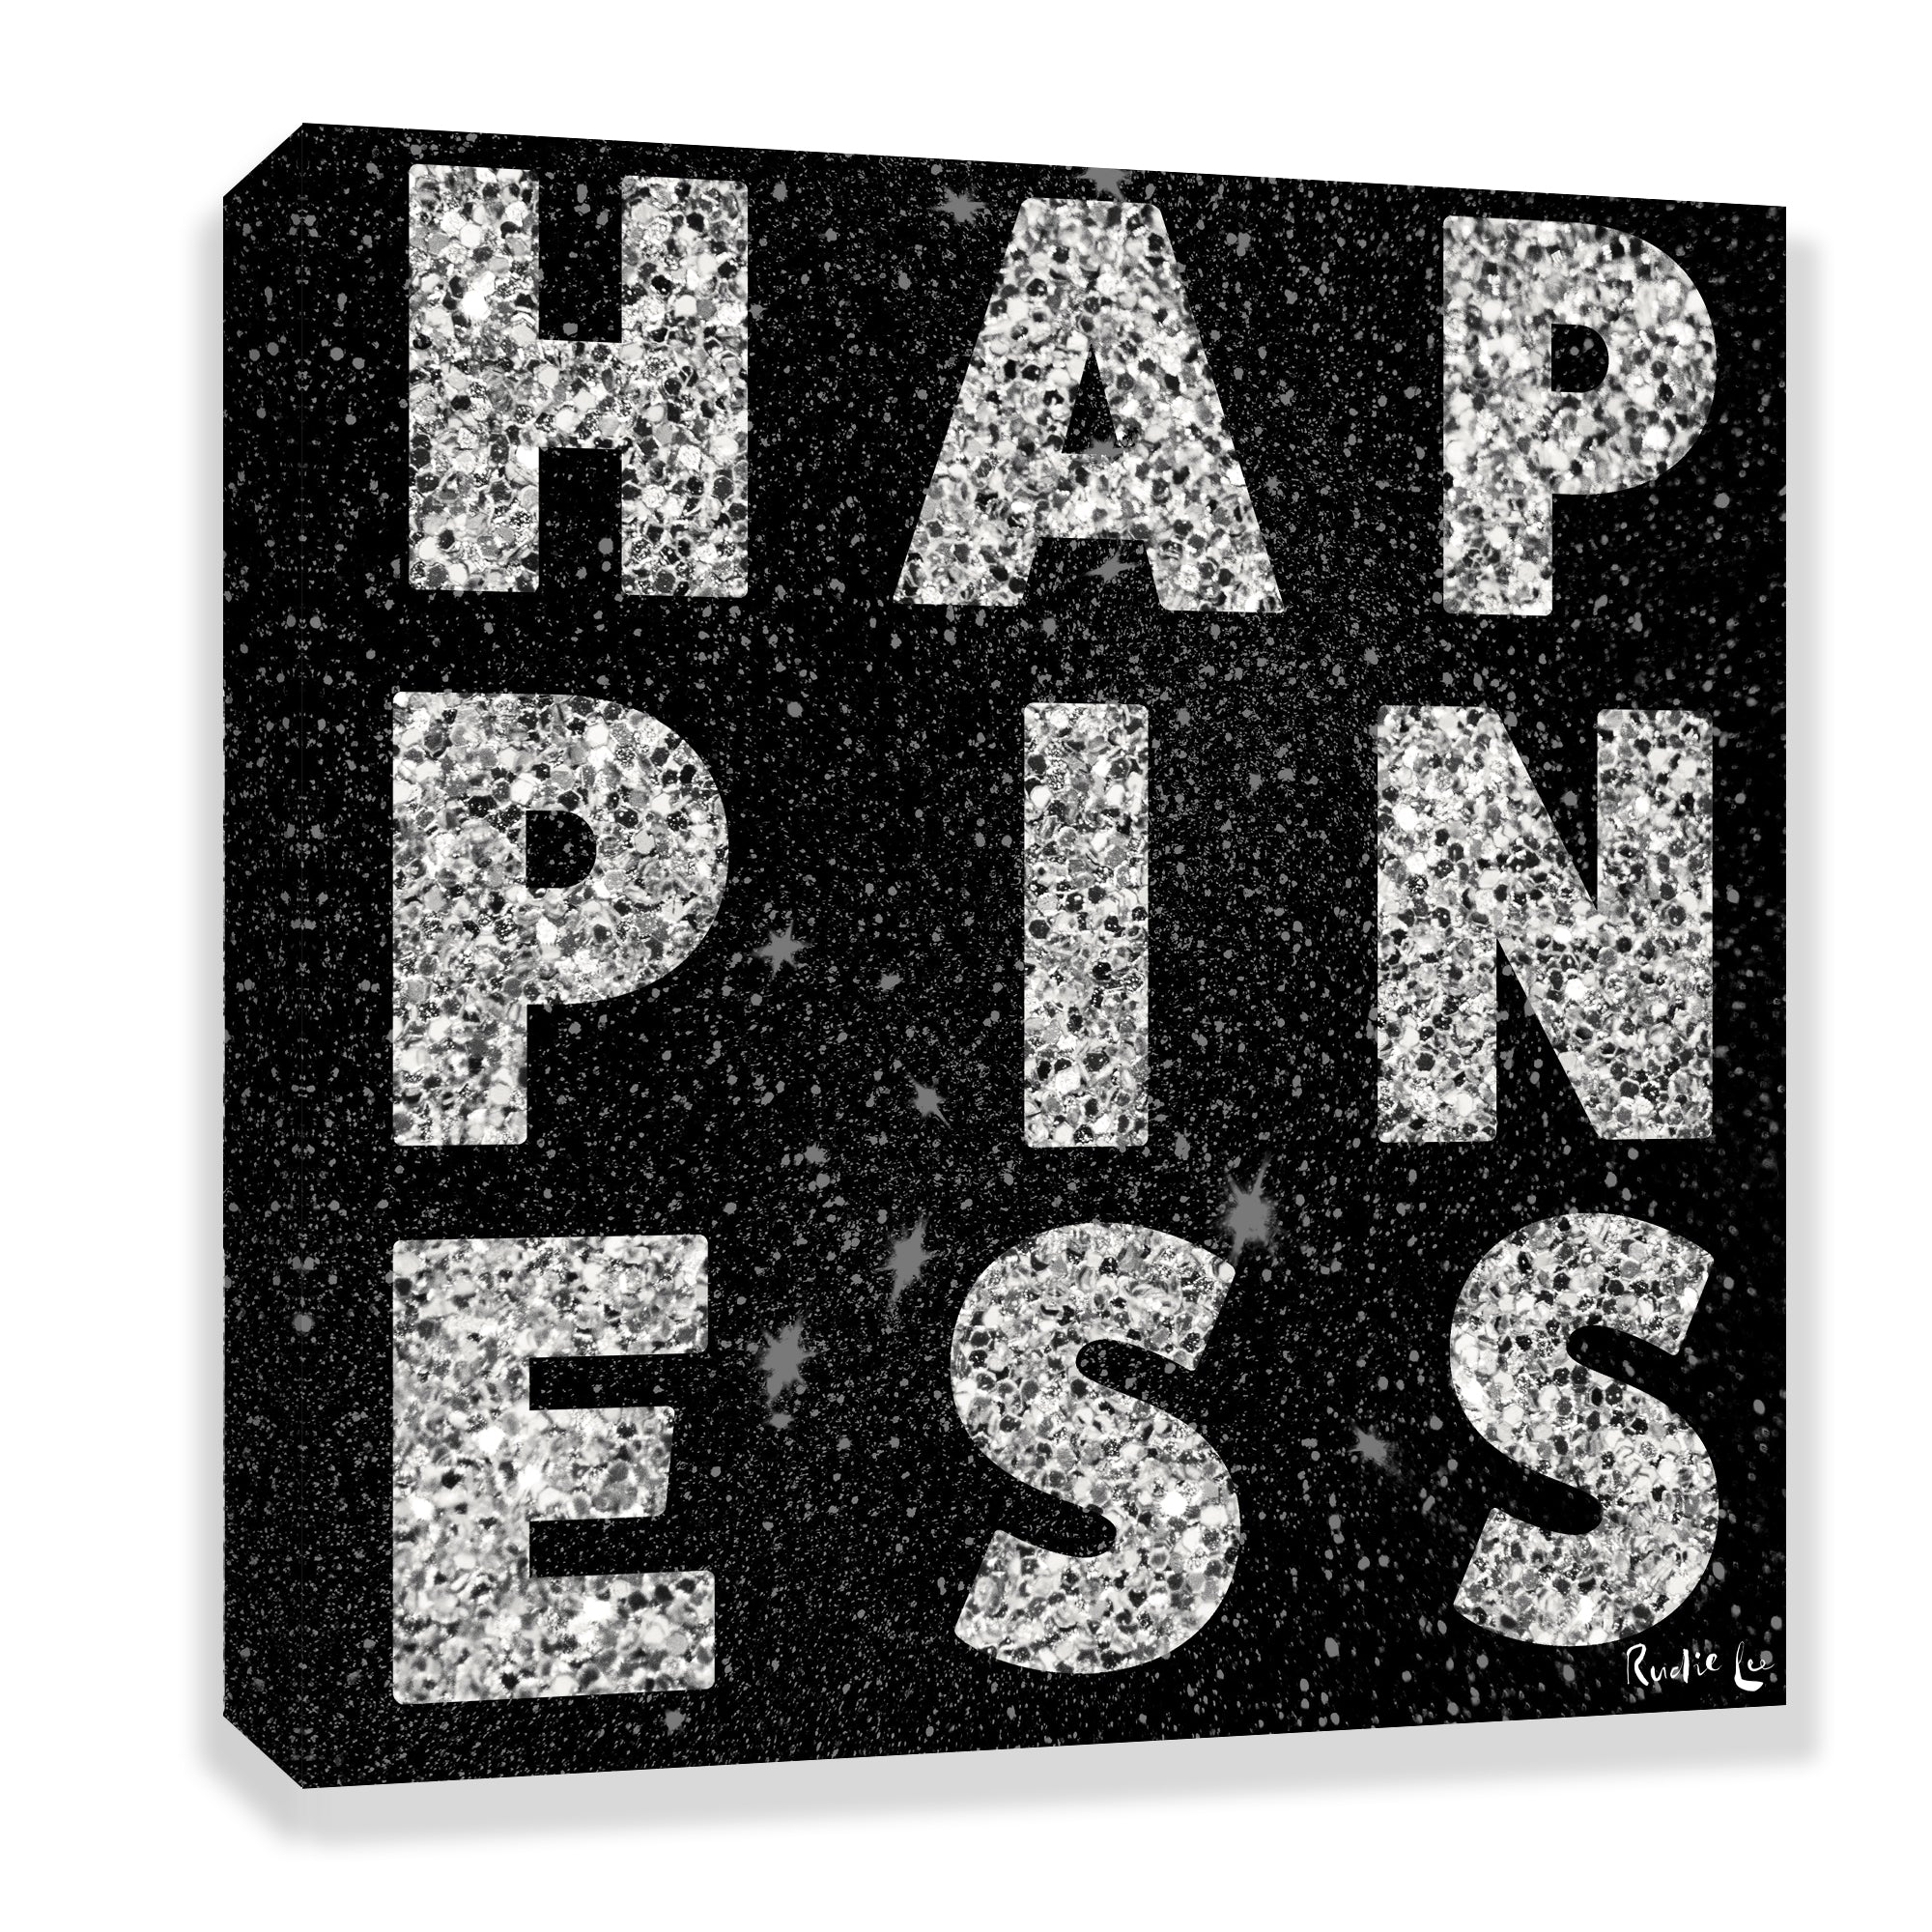 Happiness (Black) by Rudie Lee